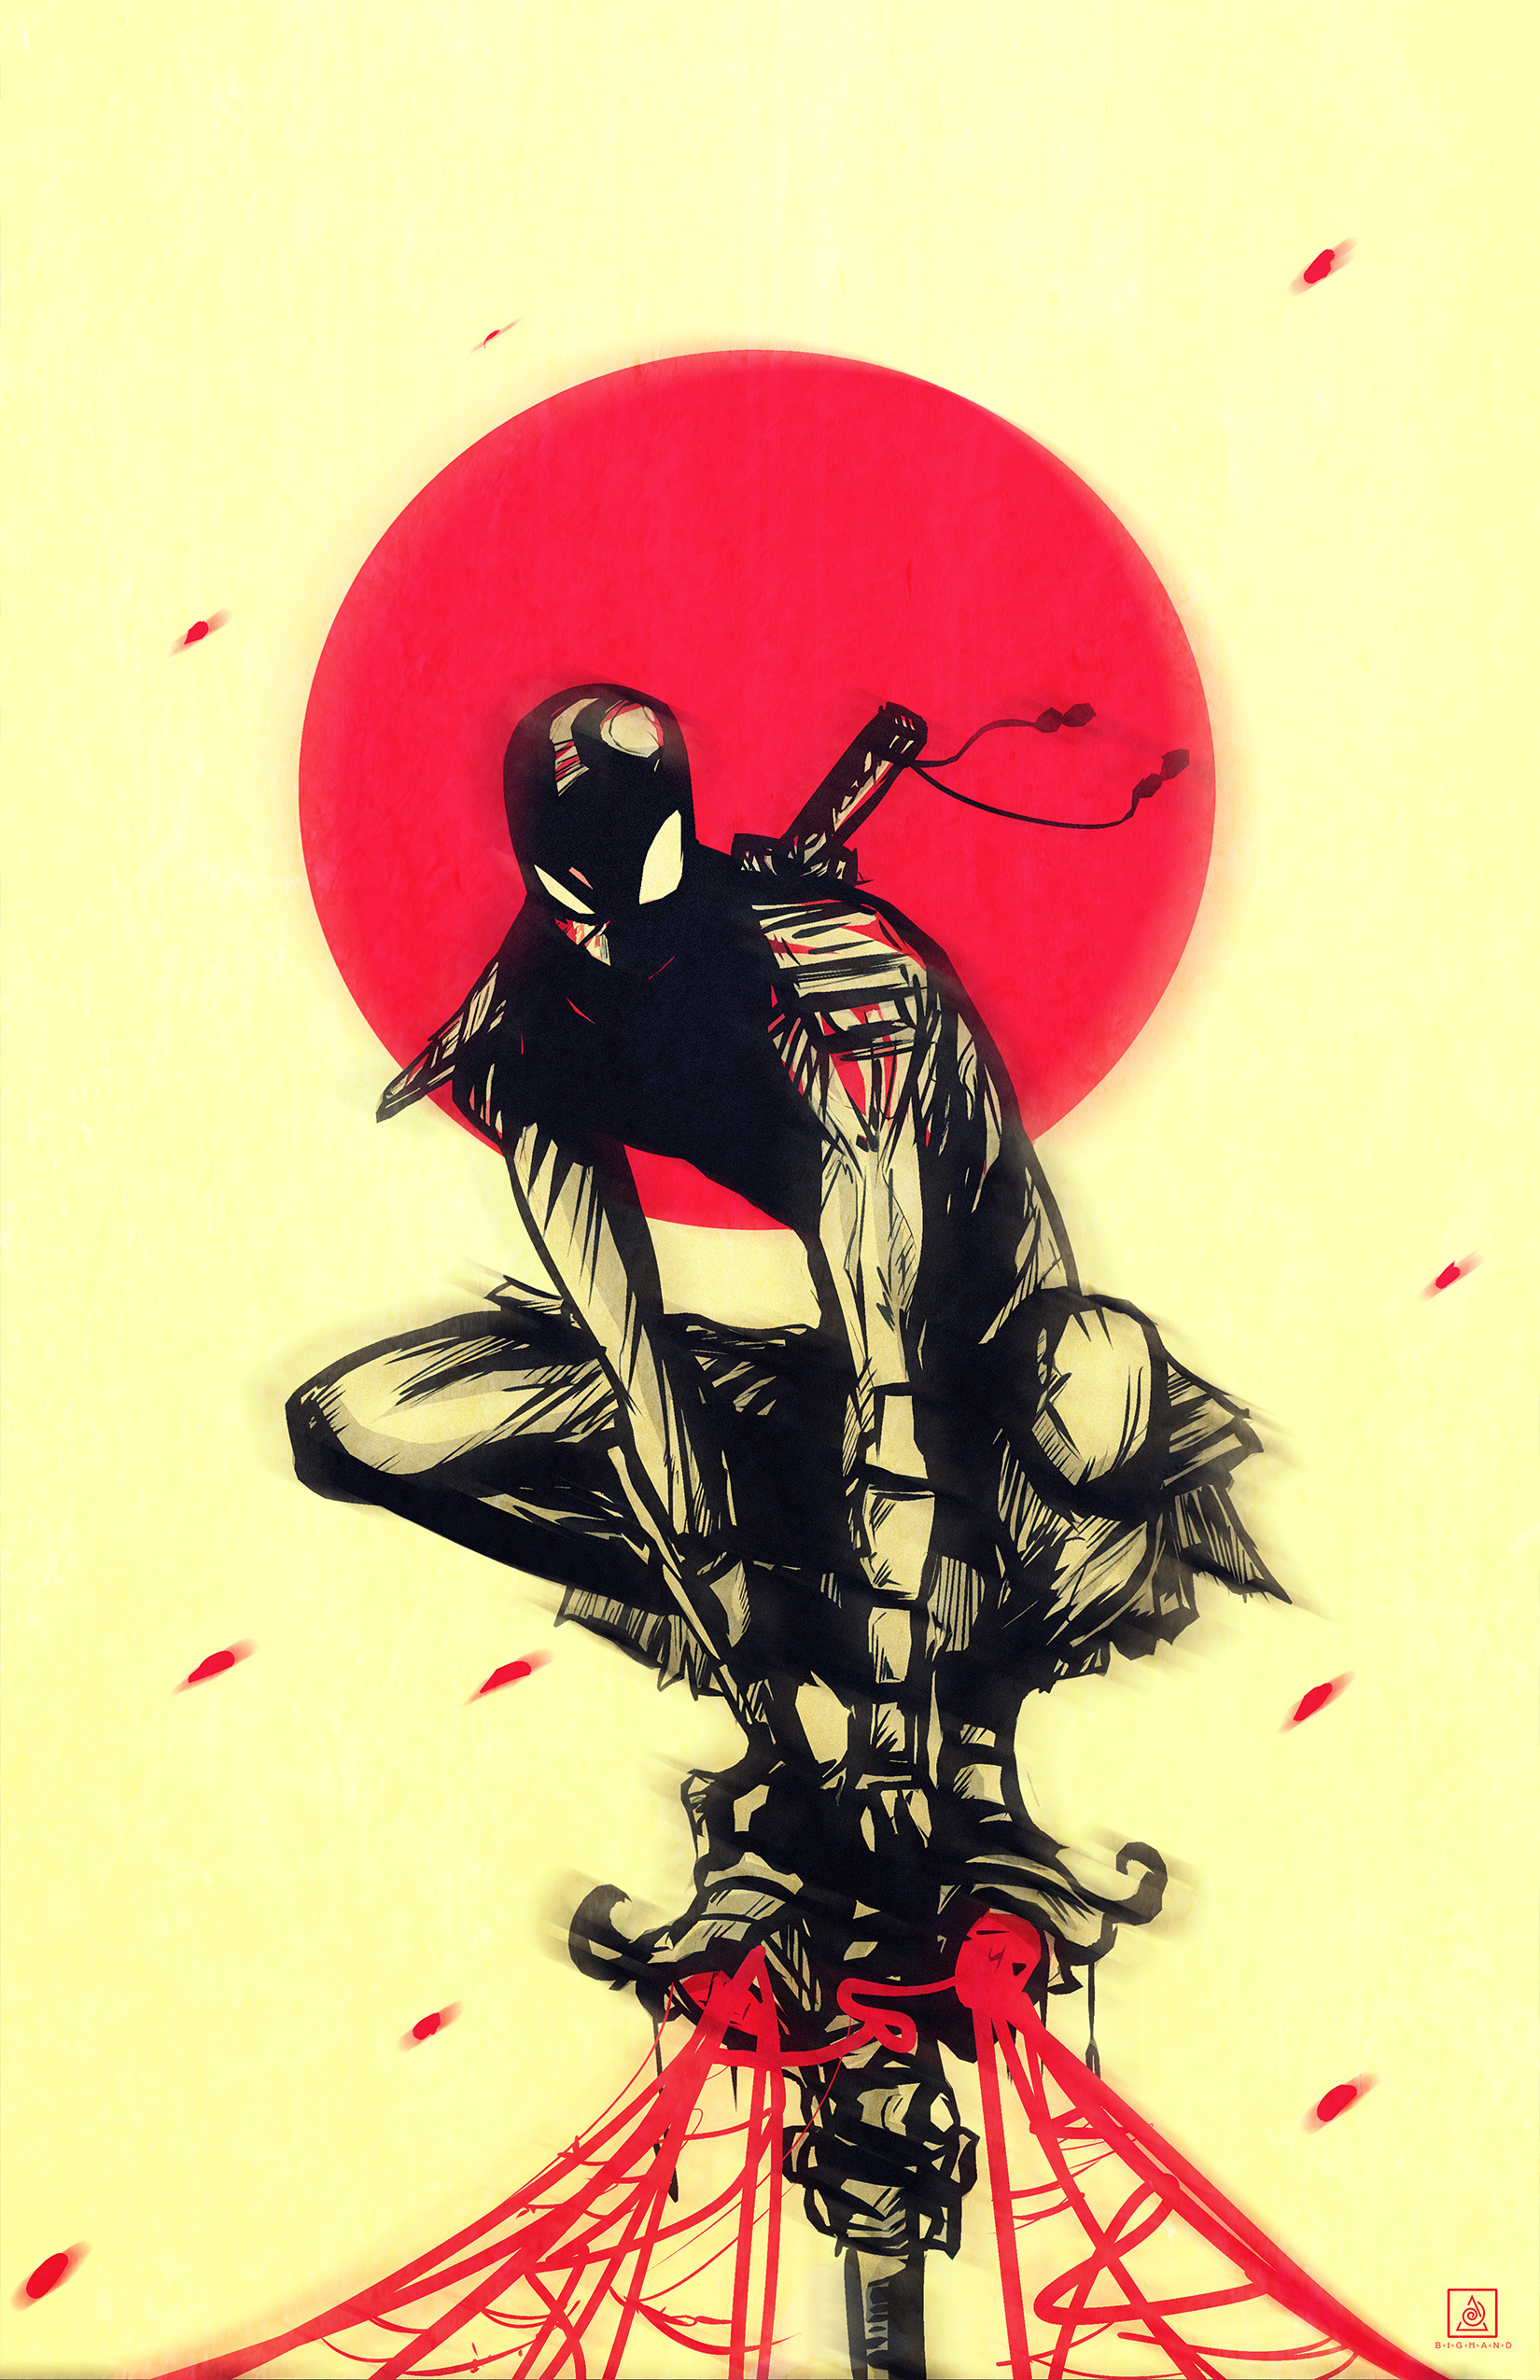 Christian benavides shinobi spider man